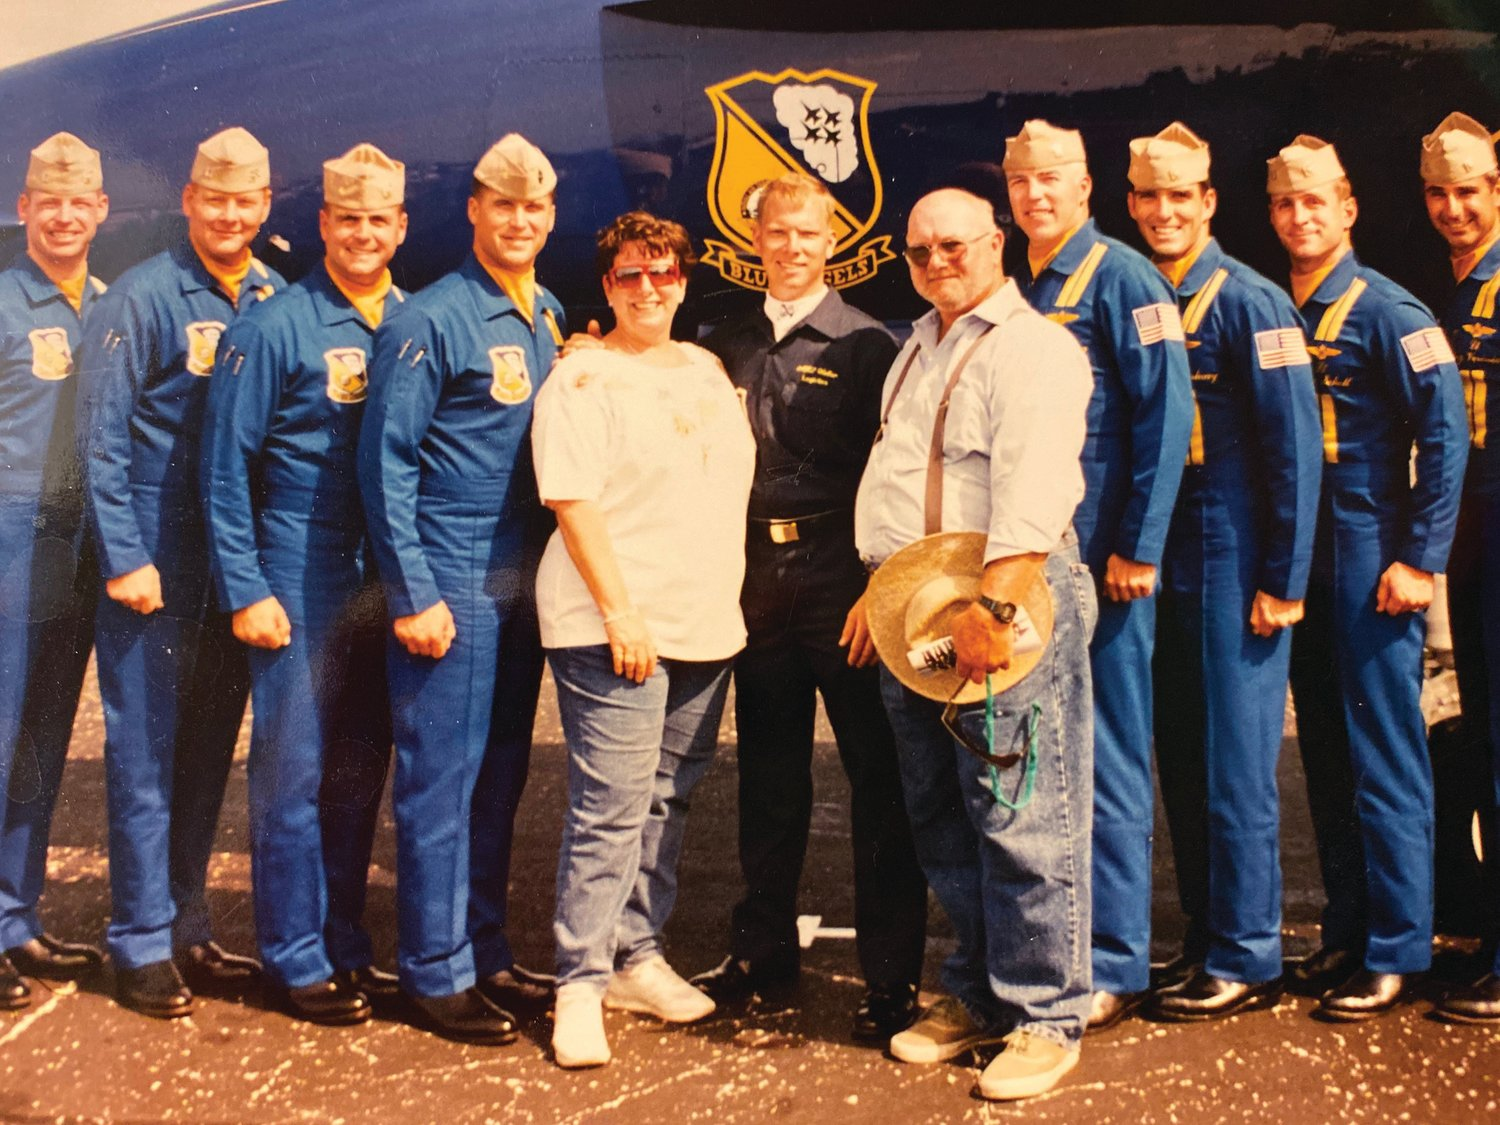 Gary Walker (center) is pictured with his Blue Angel Team (1997) and his mother, Marty Thomas, and stepfather, Glenn Thomas.